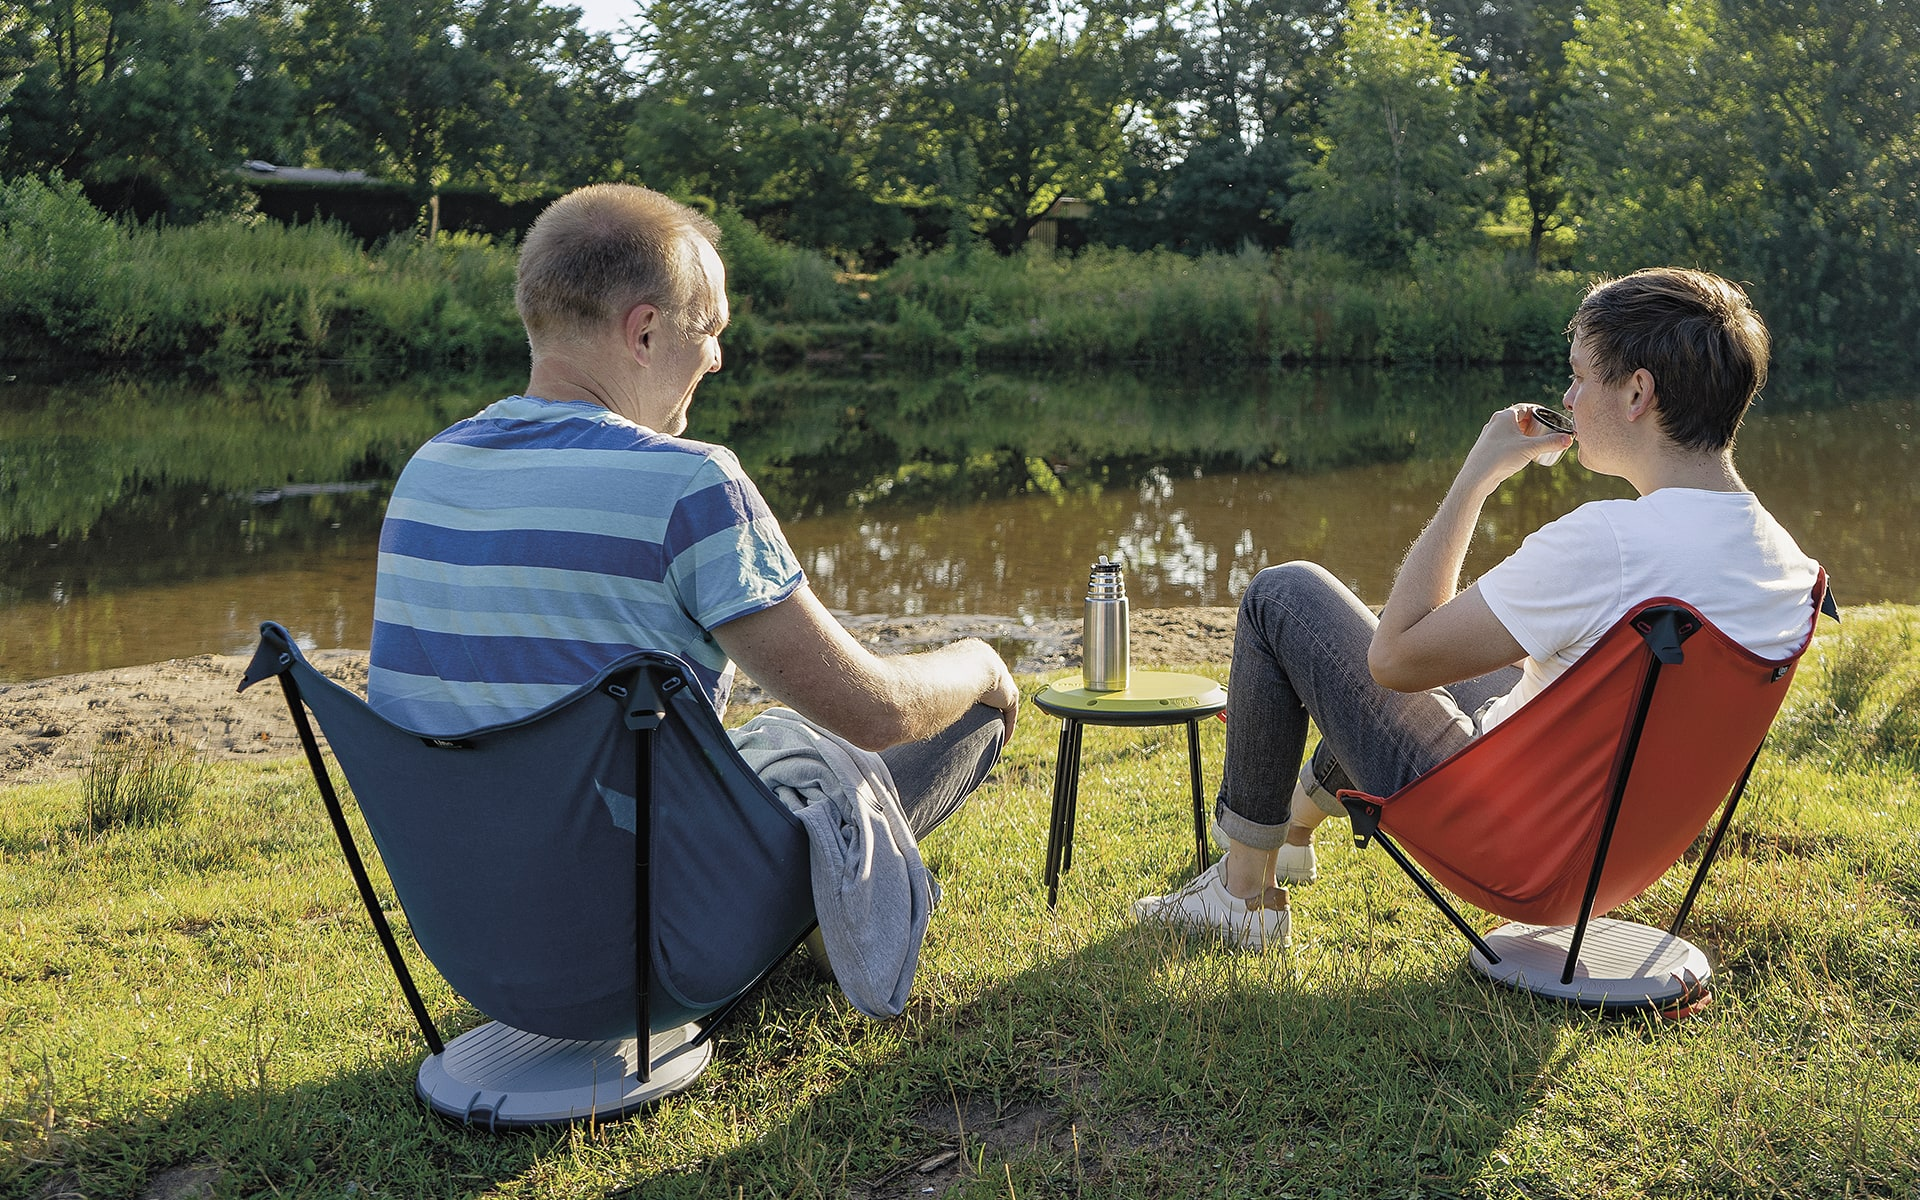 Two men sitting in blue and red Therm-a-Rest Uno outdoor chairs by ITO Design near river, using a collapsed Therm-a-Rest Uno outdoor chair as a side table